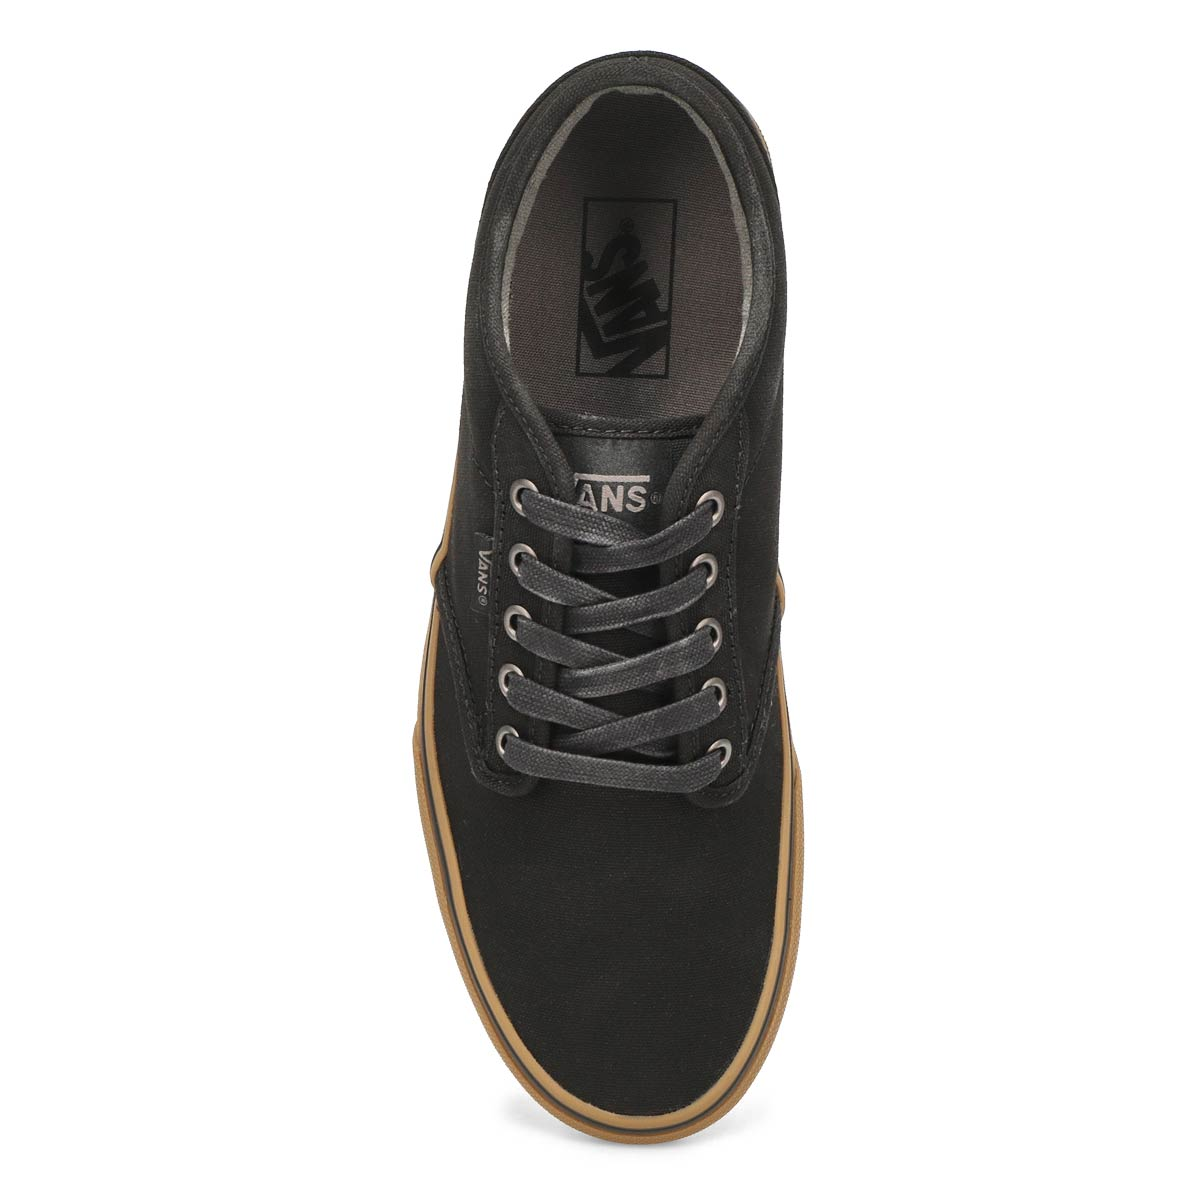 Mns Atwood black/gum cnvs laceup sneaker